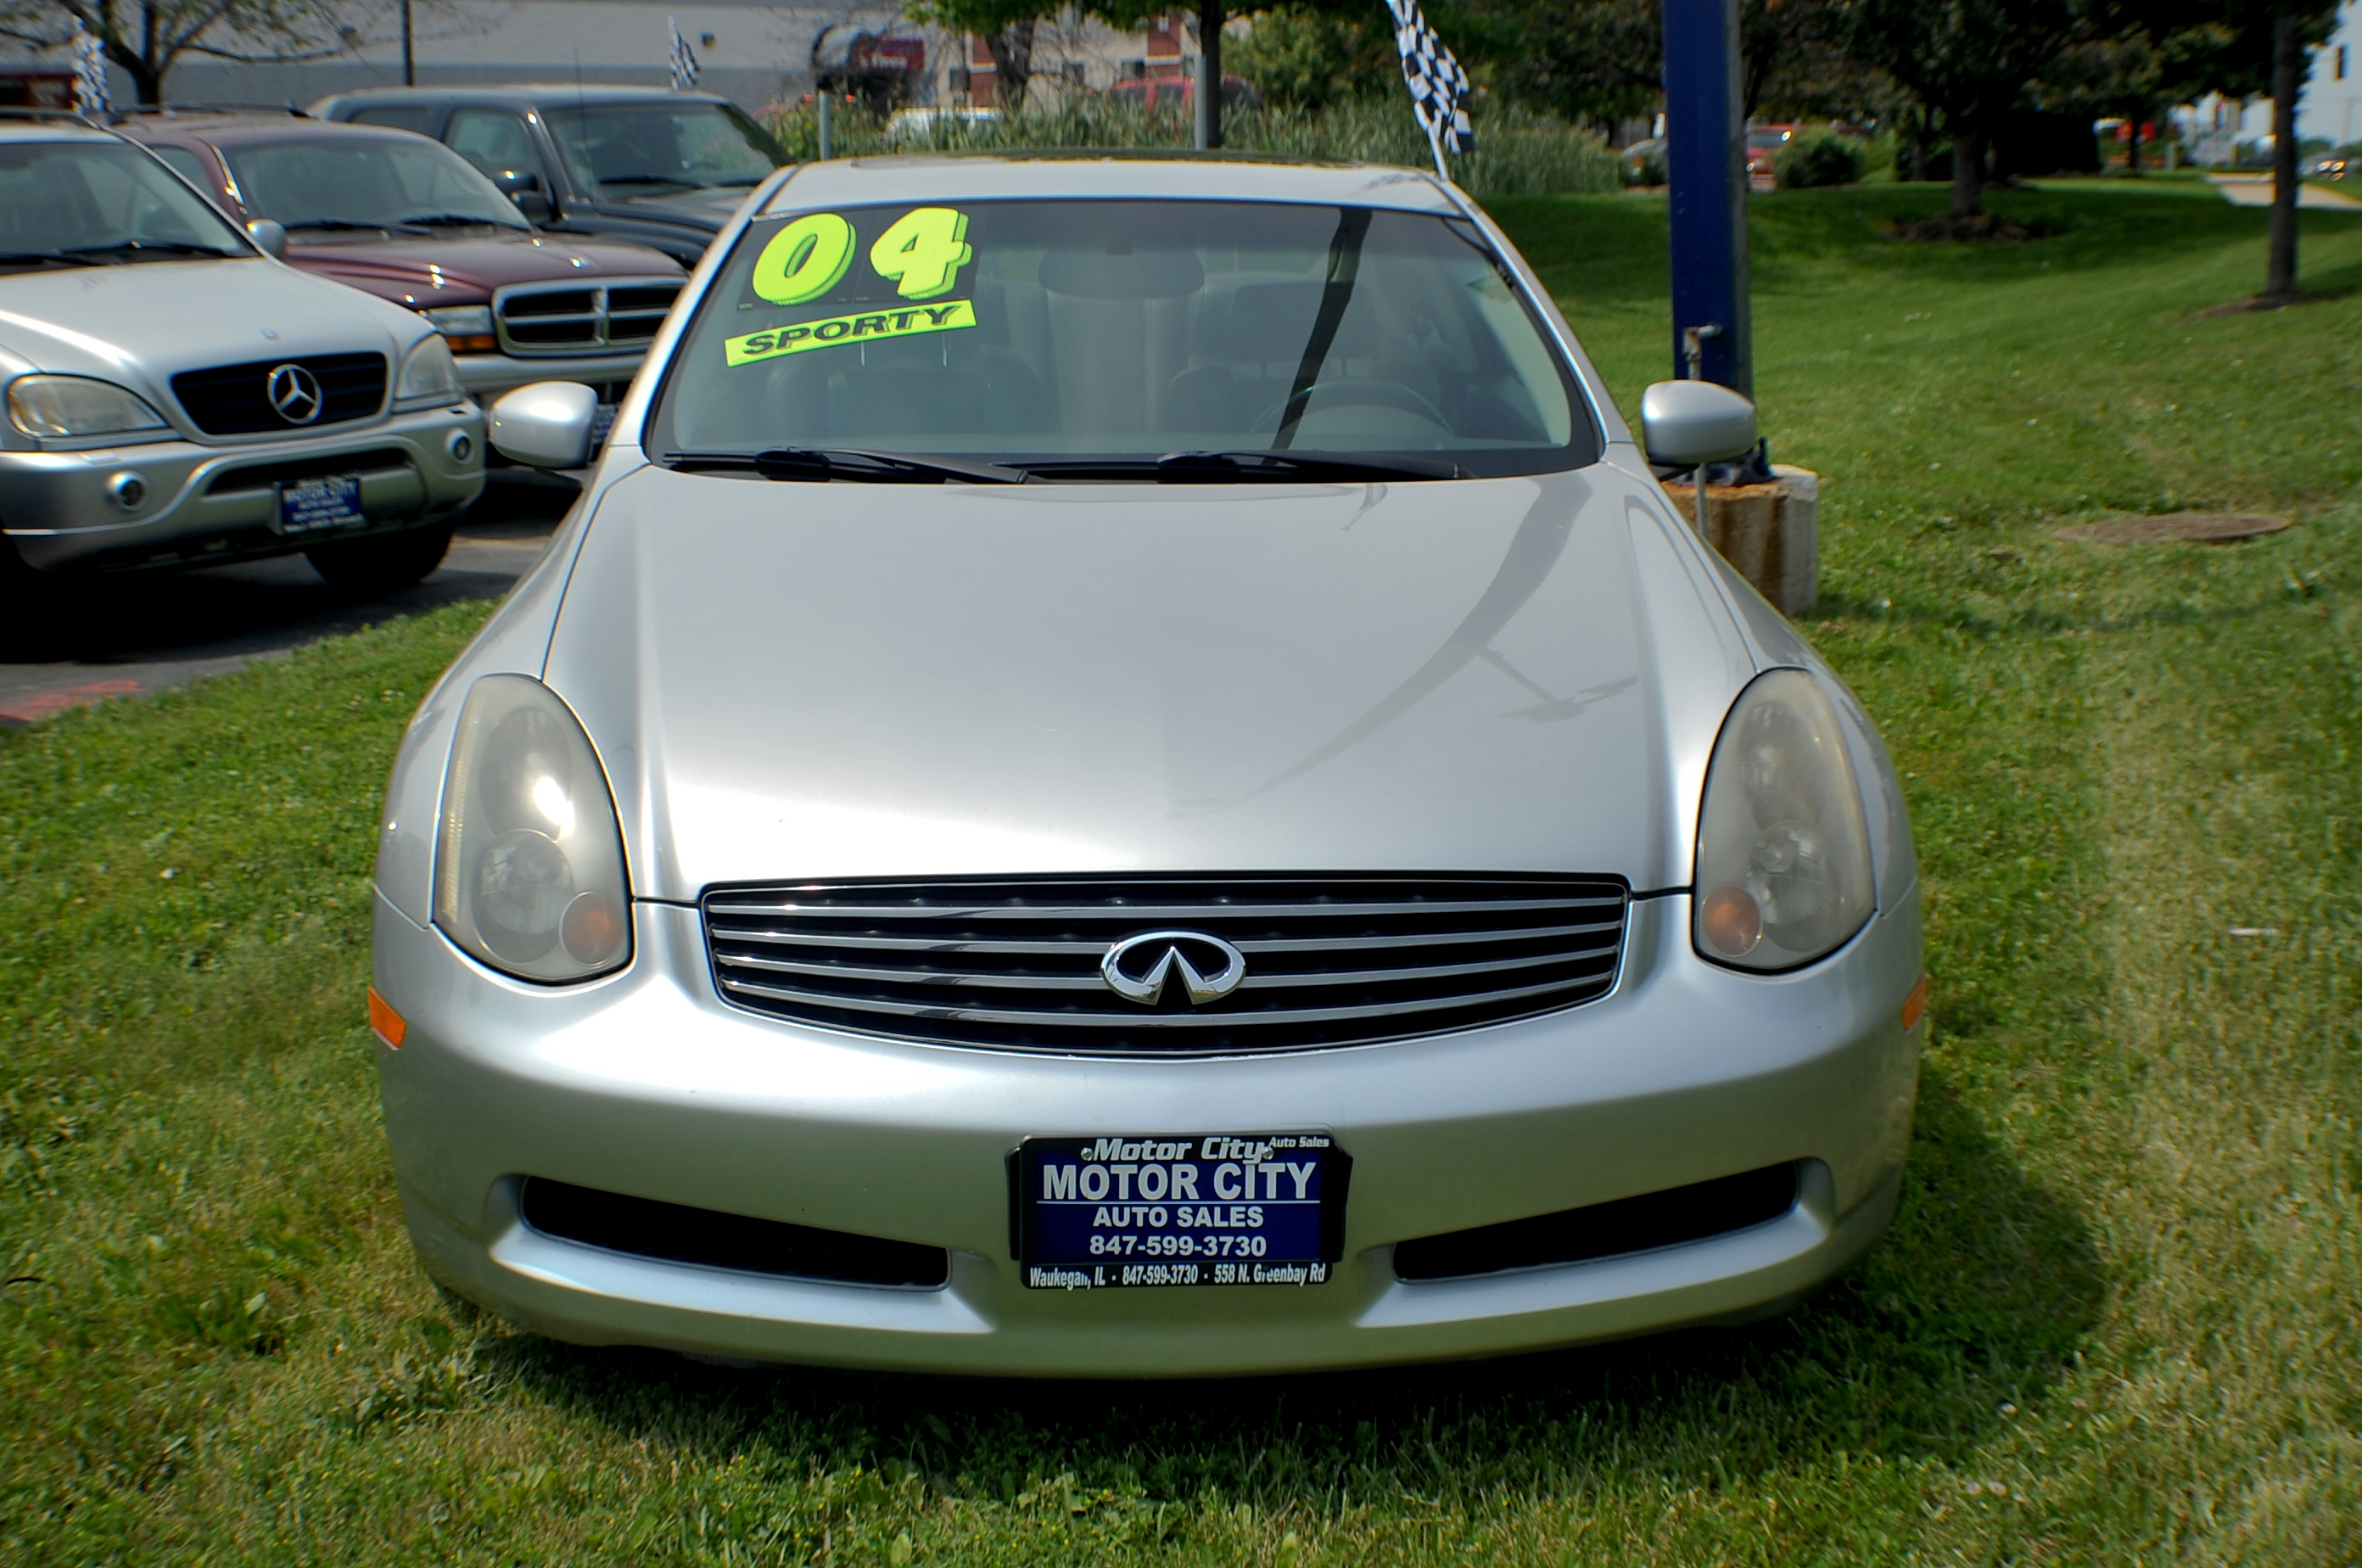 2004 infiniti g35 silver sport coupe used car sale. Black Bedroom Furniture Sets. Home Design Ideas